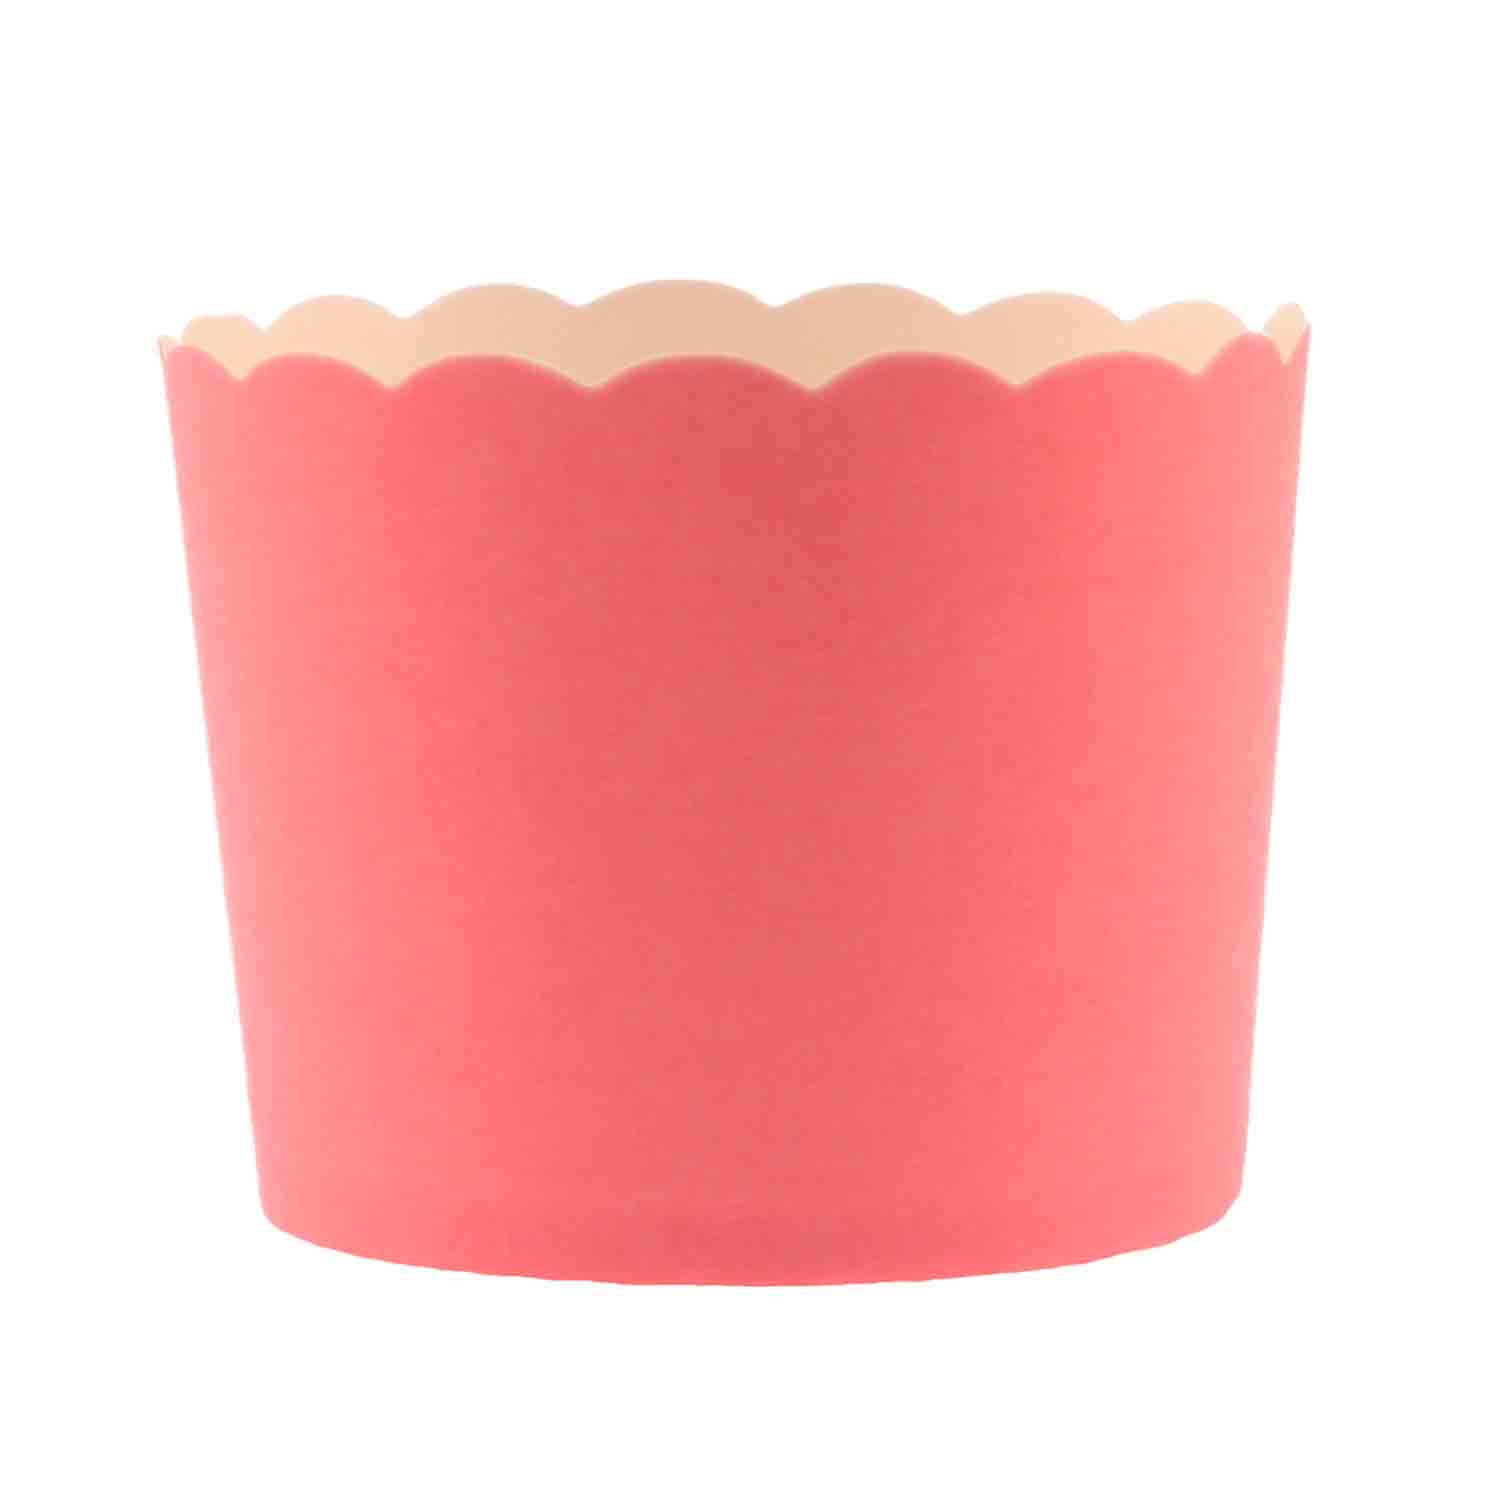 Pink Bake In Cups - Lg